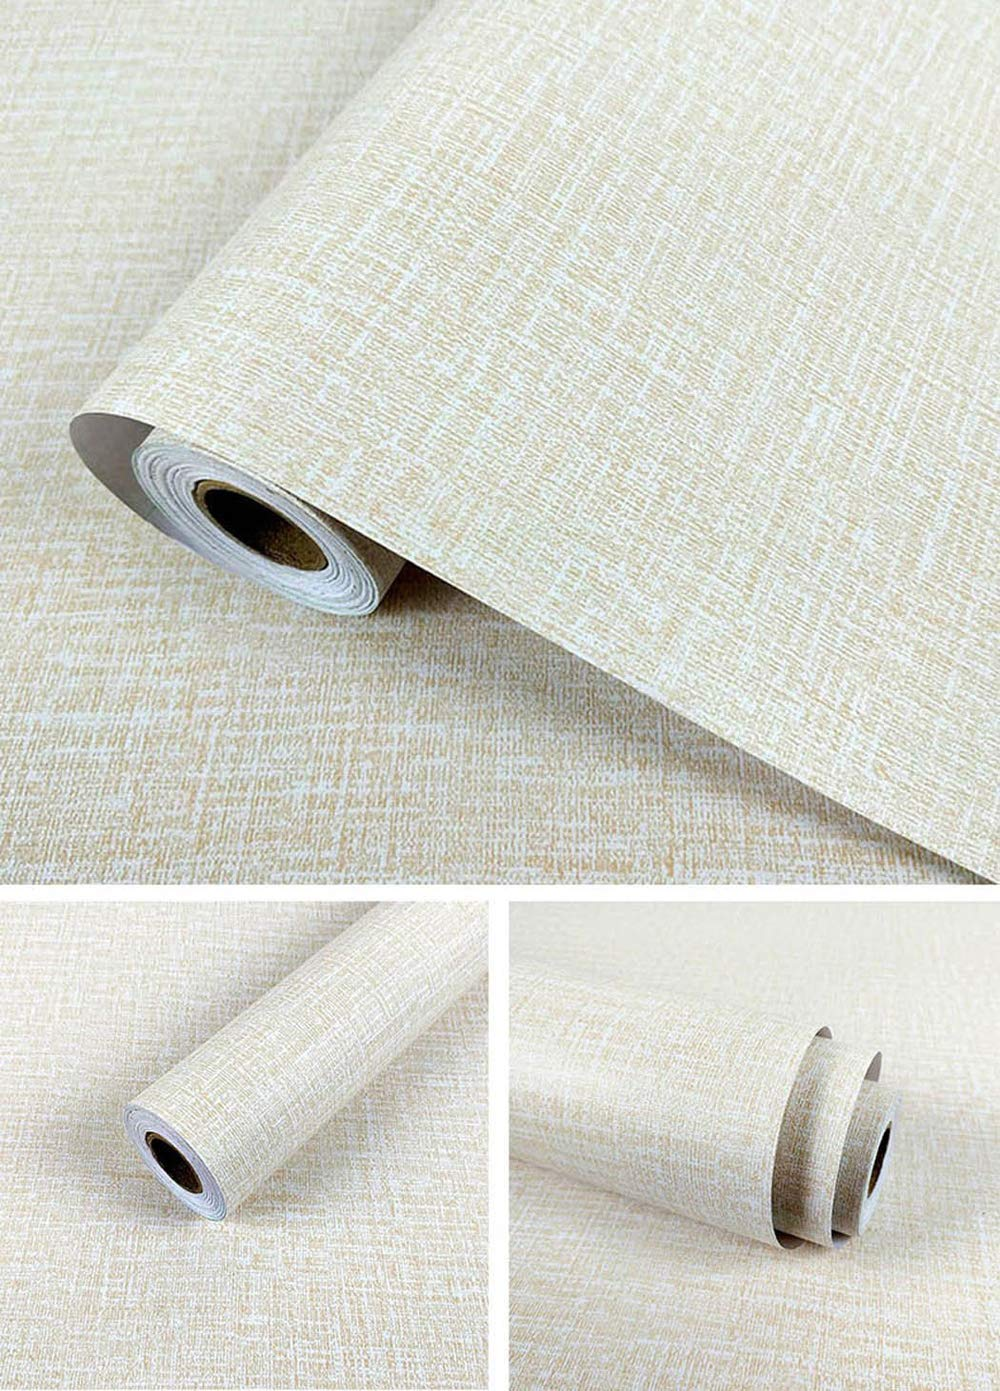 Modern Faux Grasscloth Peel And Stick Wallpaper Roll Self Adhesive Linen Contact Paper Wall Decoratio Contact Paper Wall Peel And Stick Wallpaper Contact Paper